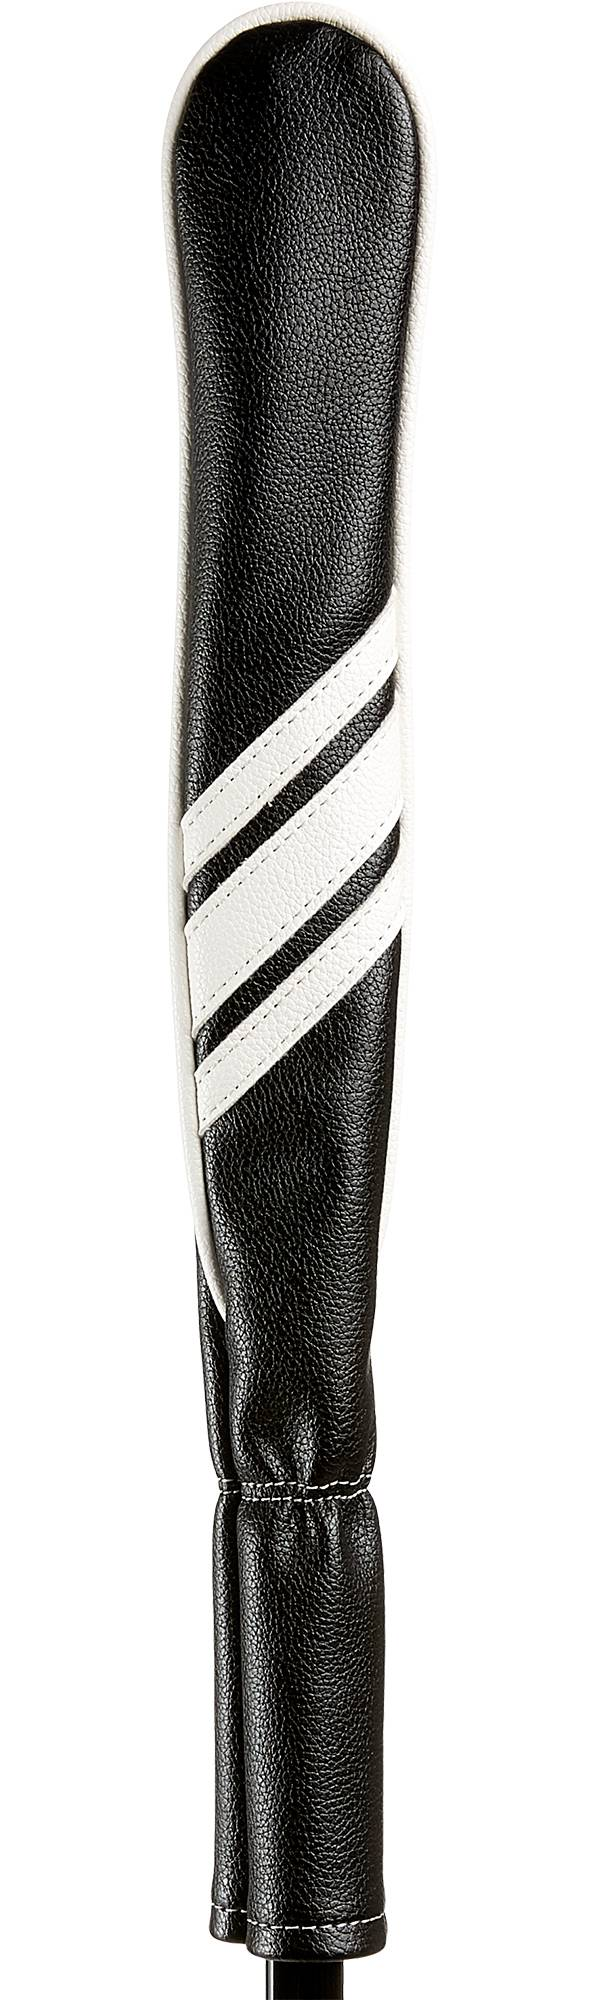 Maxfli Alignment Stick Headcover product image